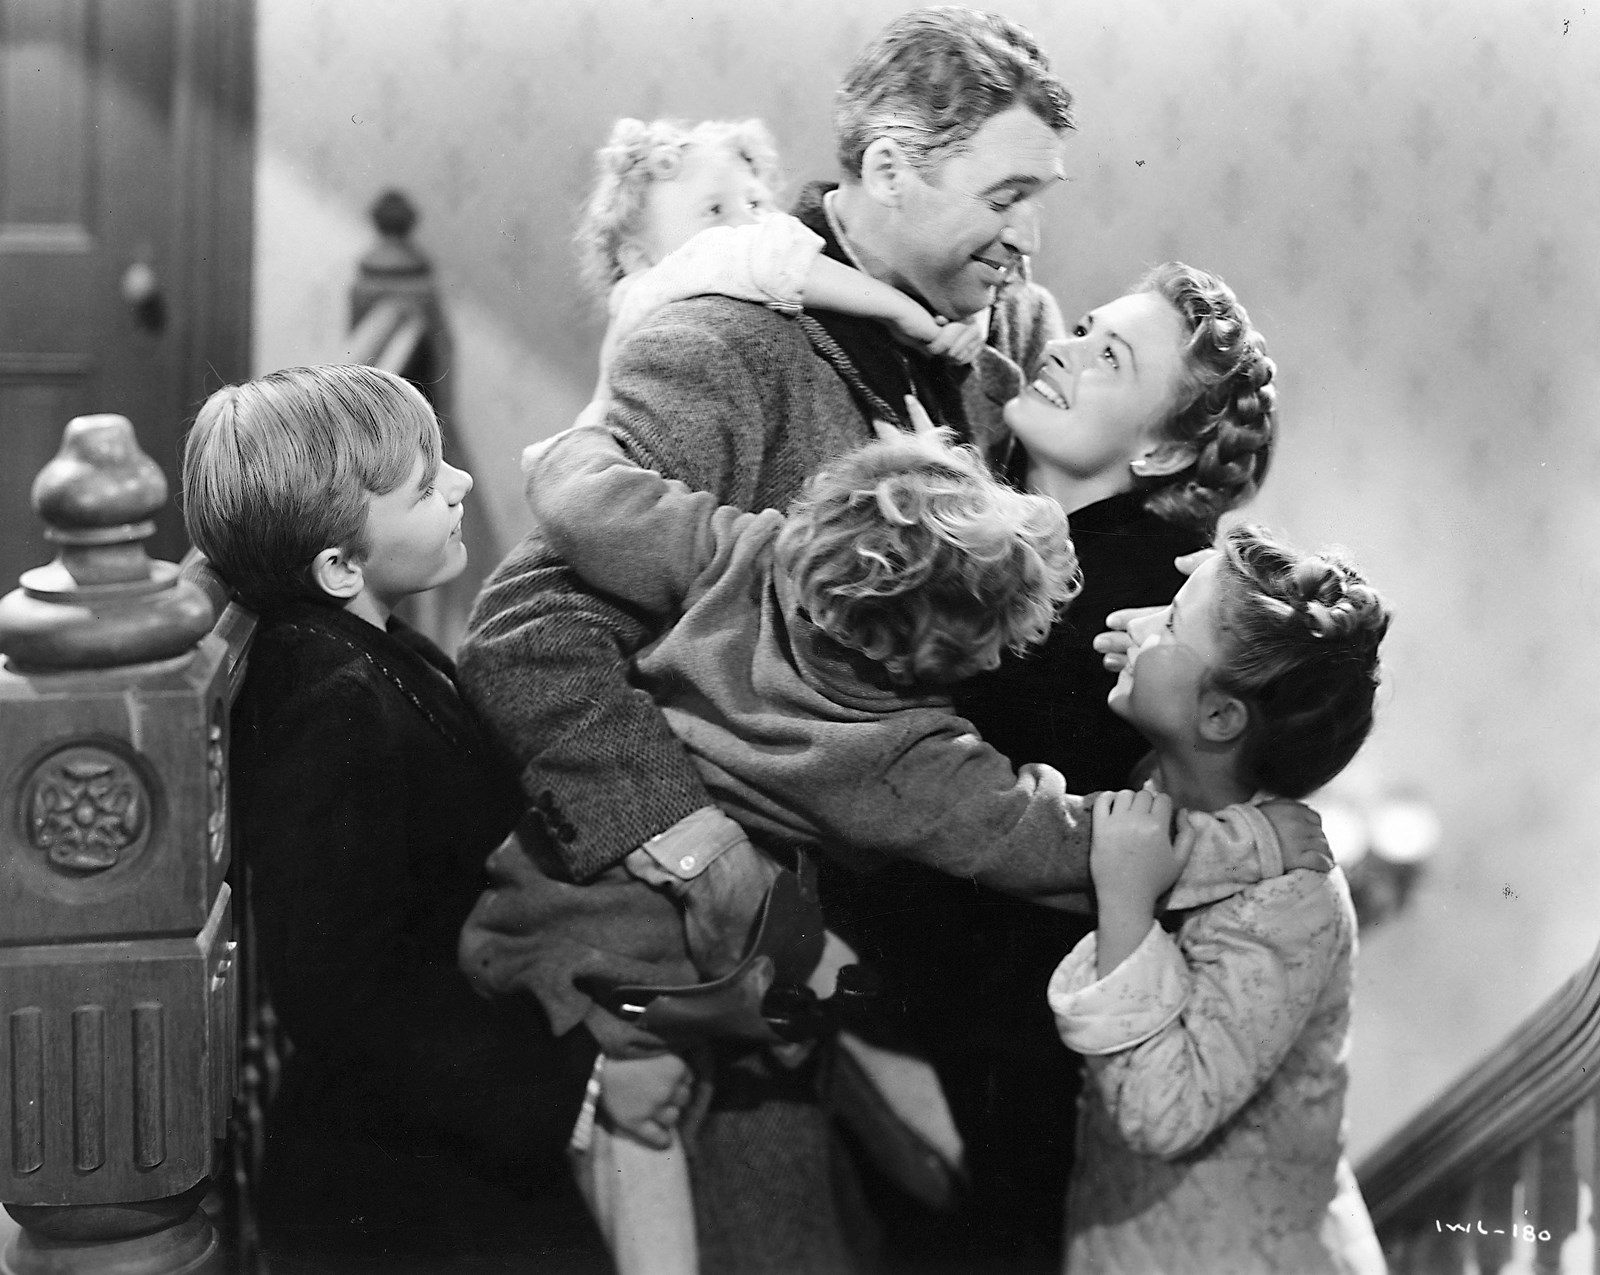 Classic scene from It's a Wonderful Life